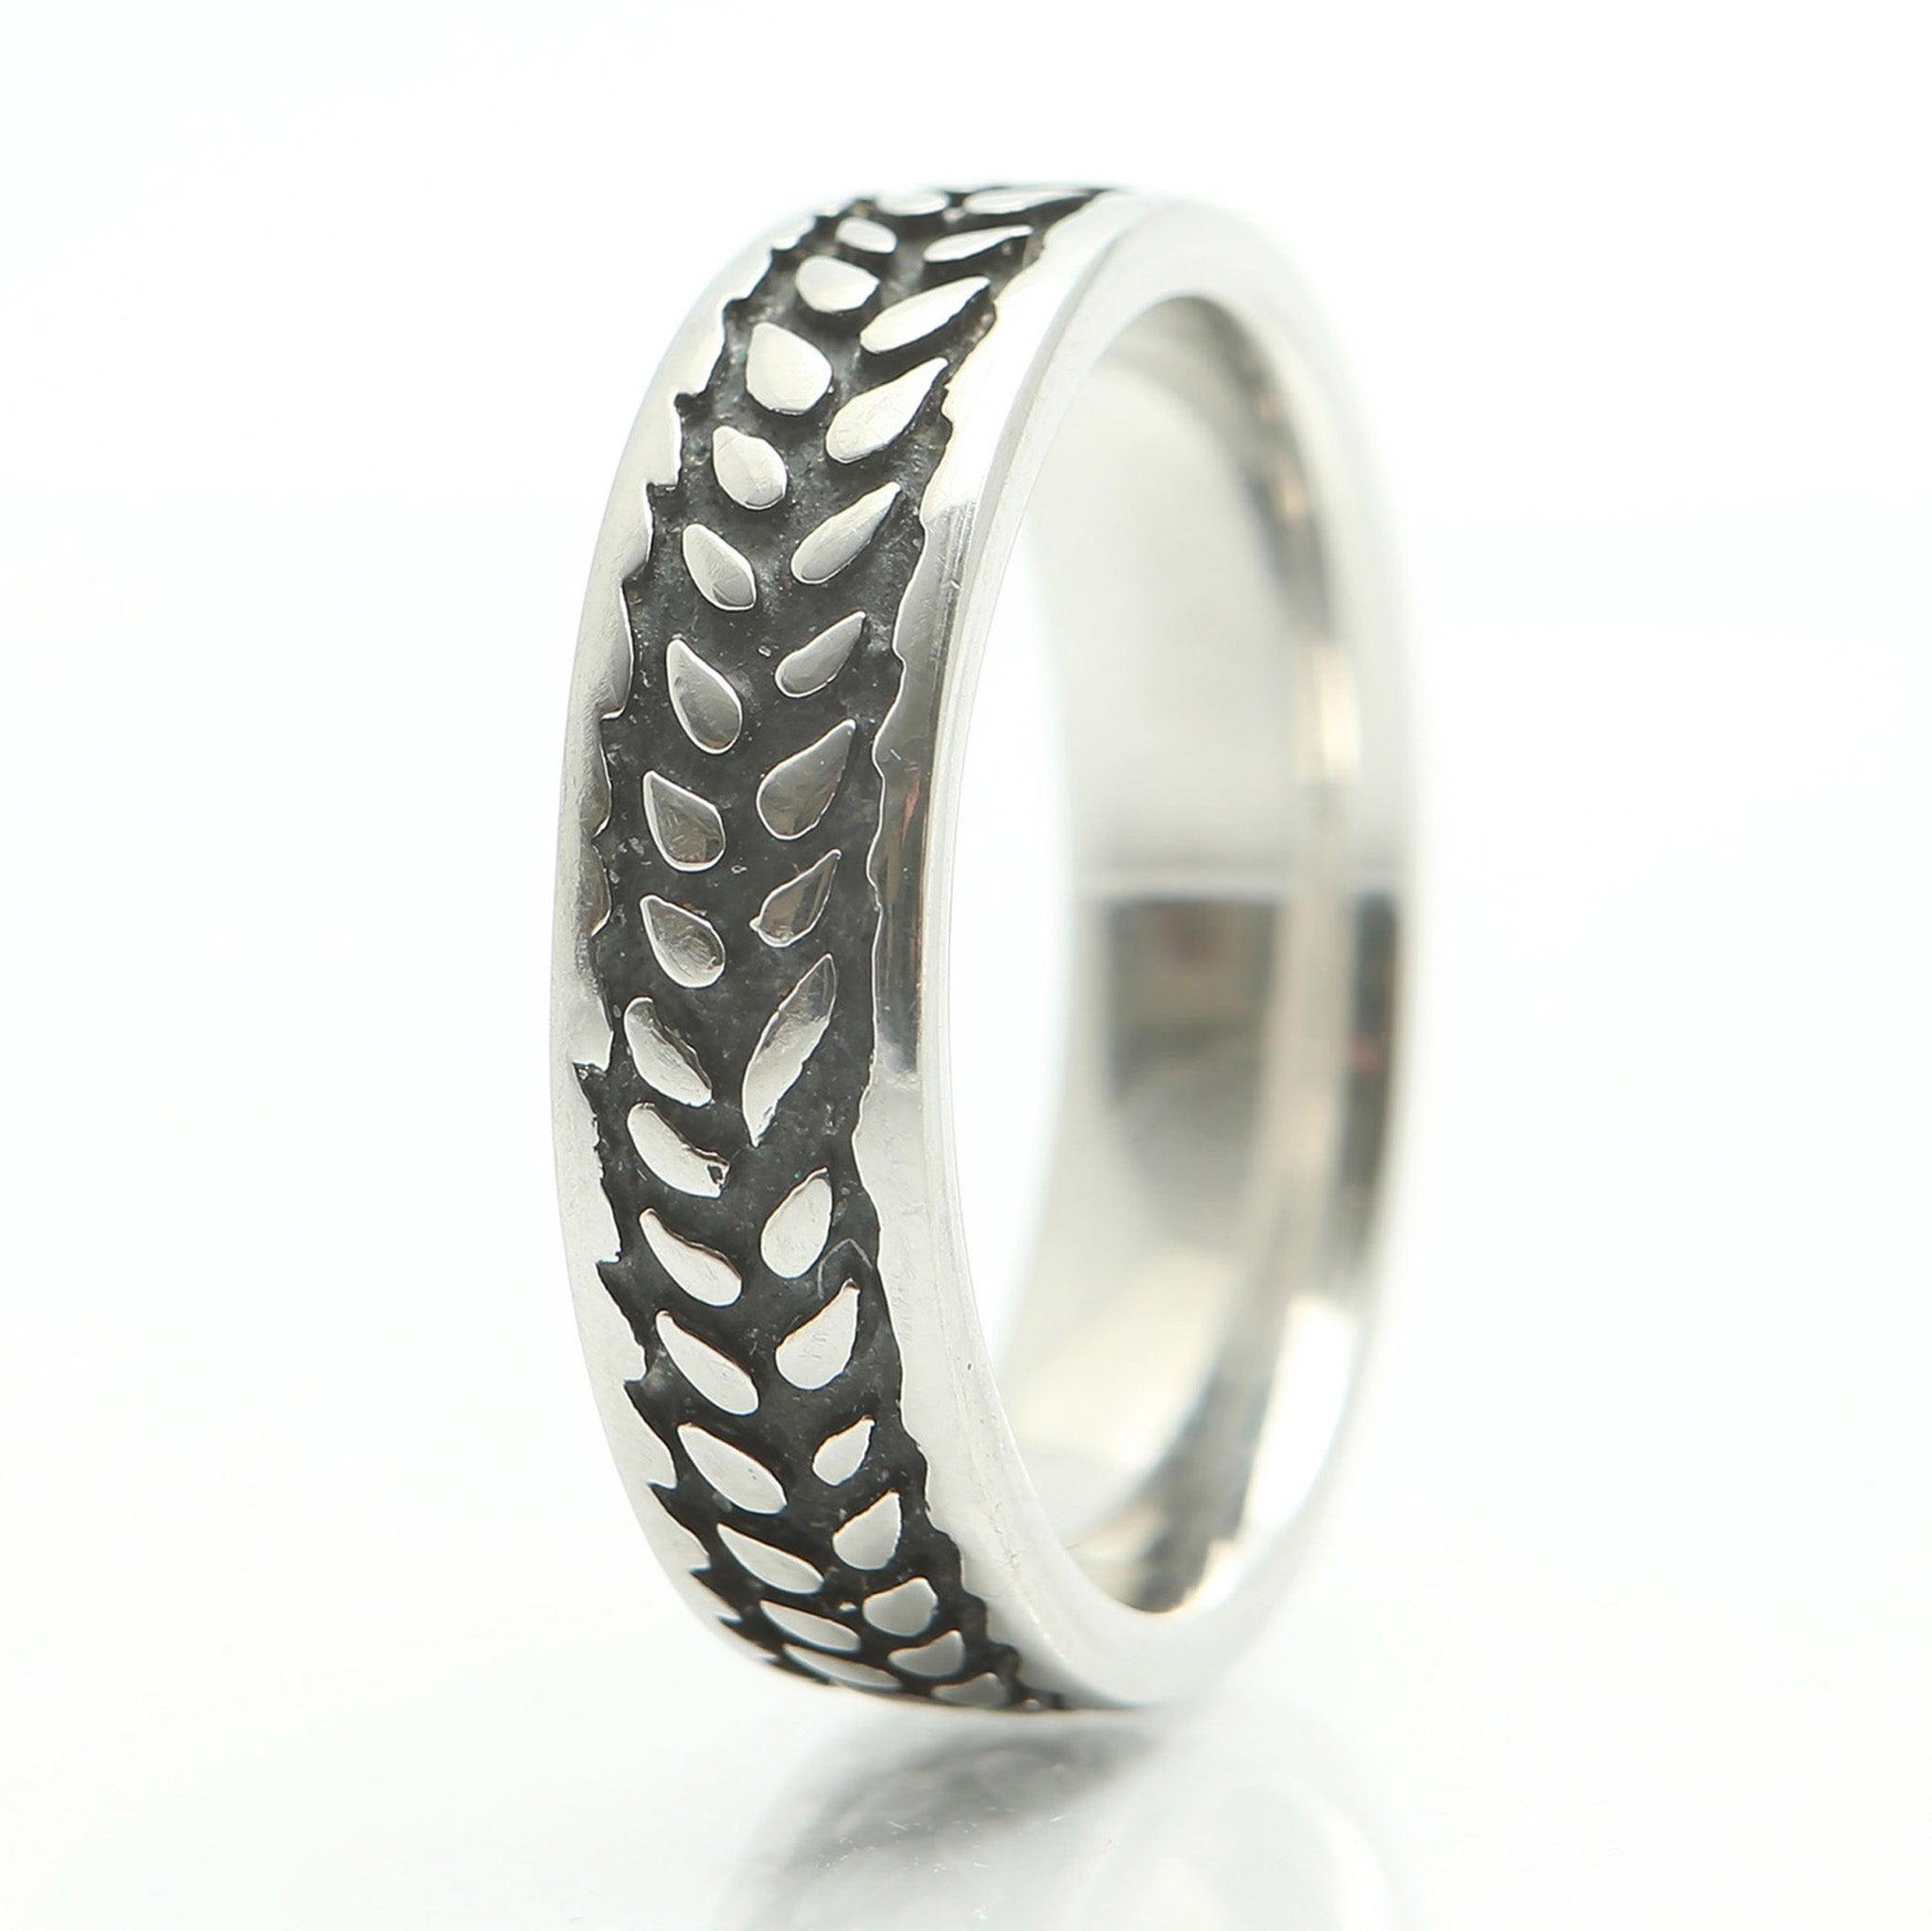 Barley Ring in Narrow Stainless Steel